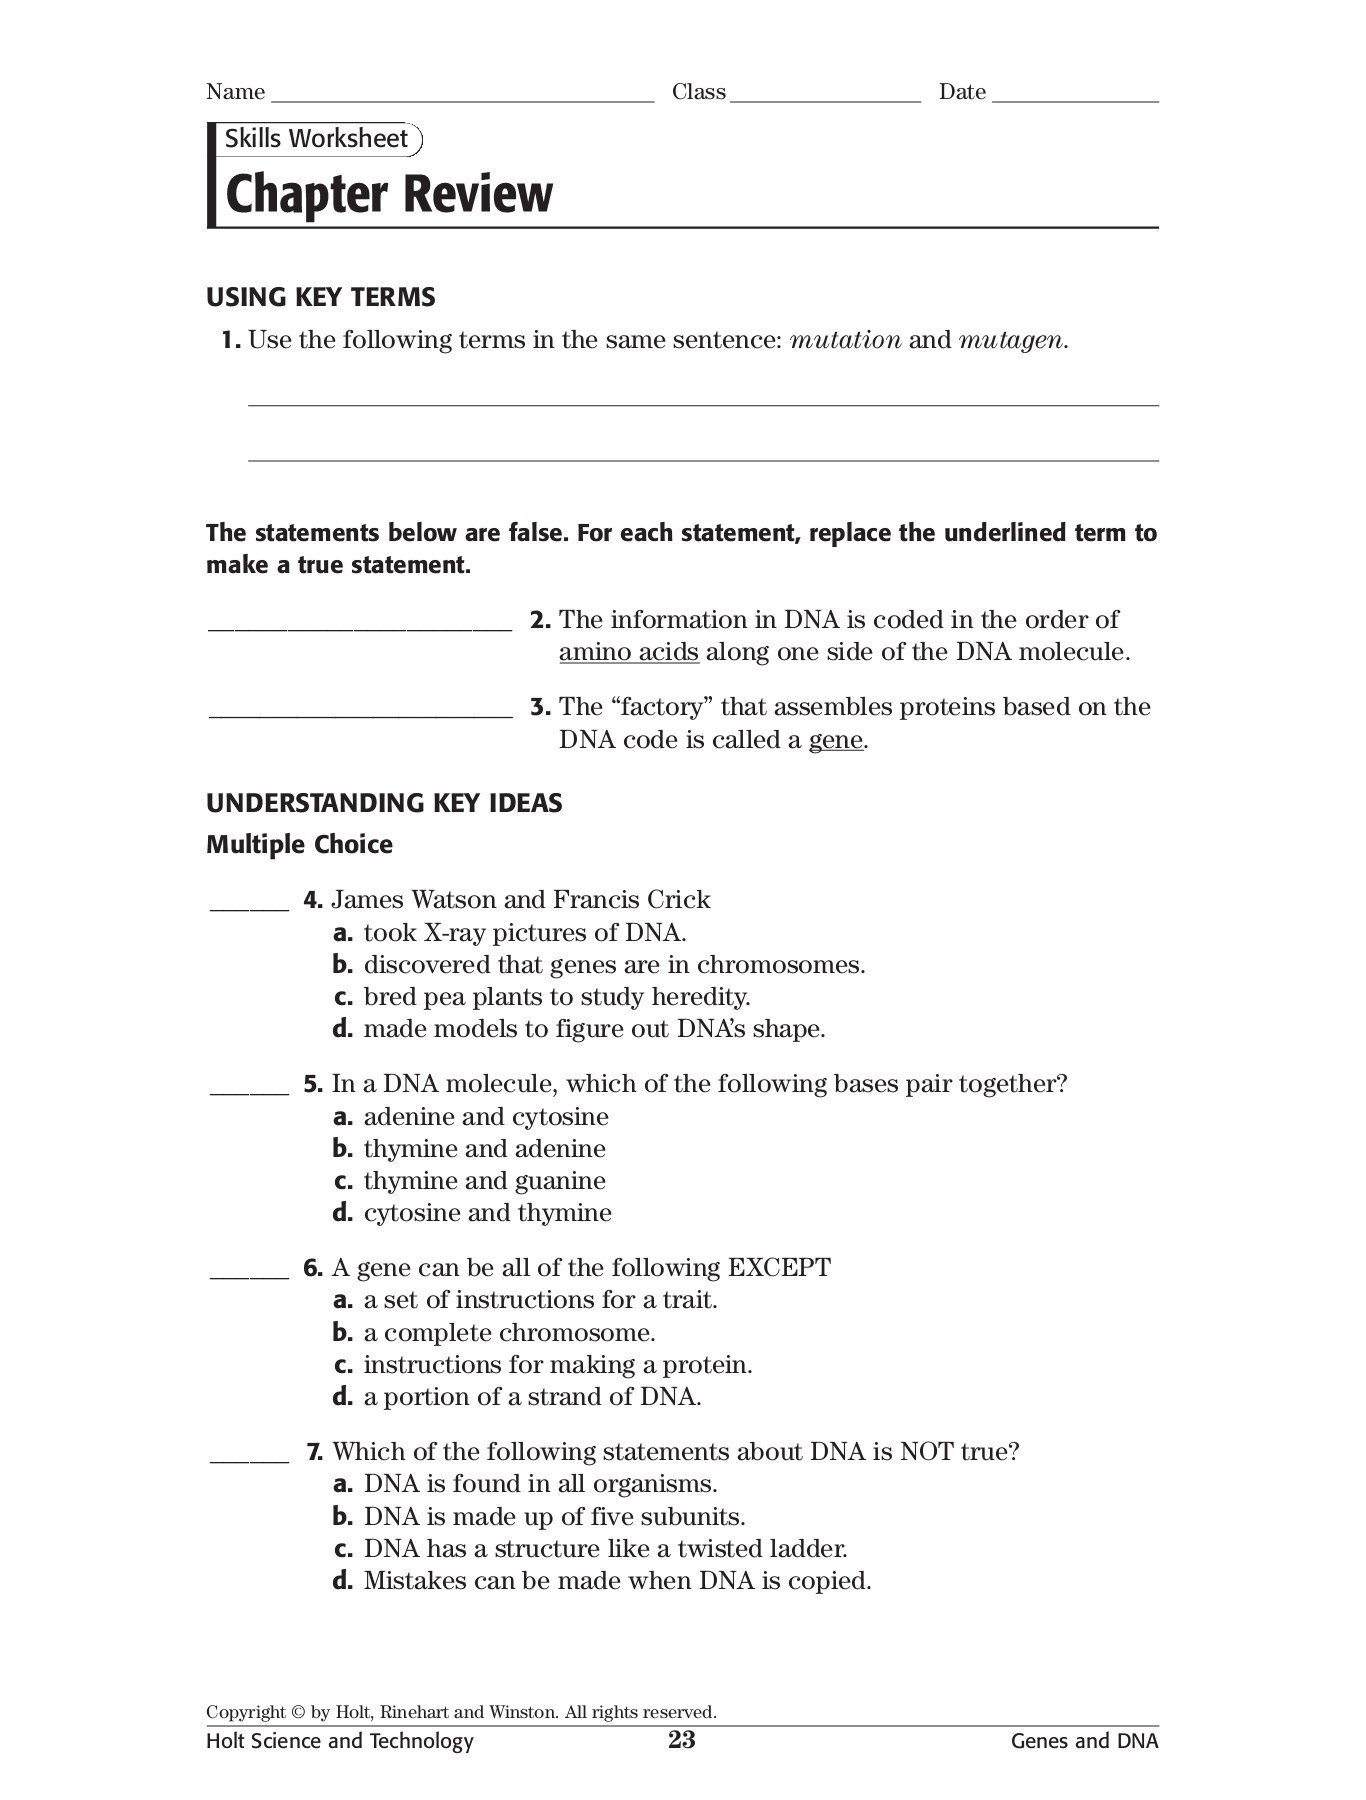 Skills Worksheet Dna Structure Skills Worksheet Chapter Review Blessed Trinity Catholic